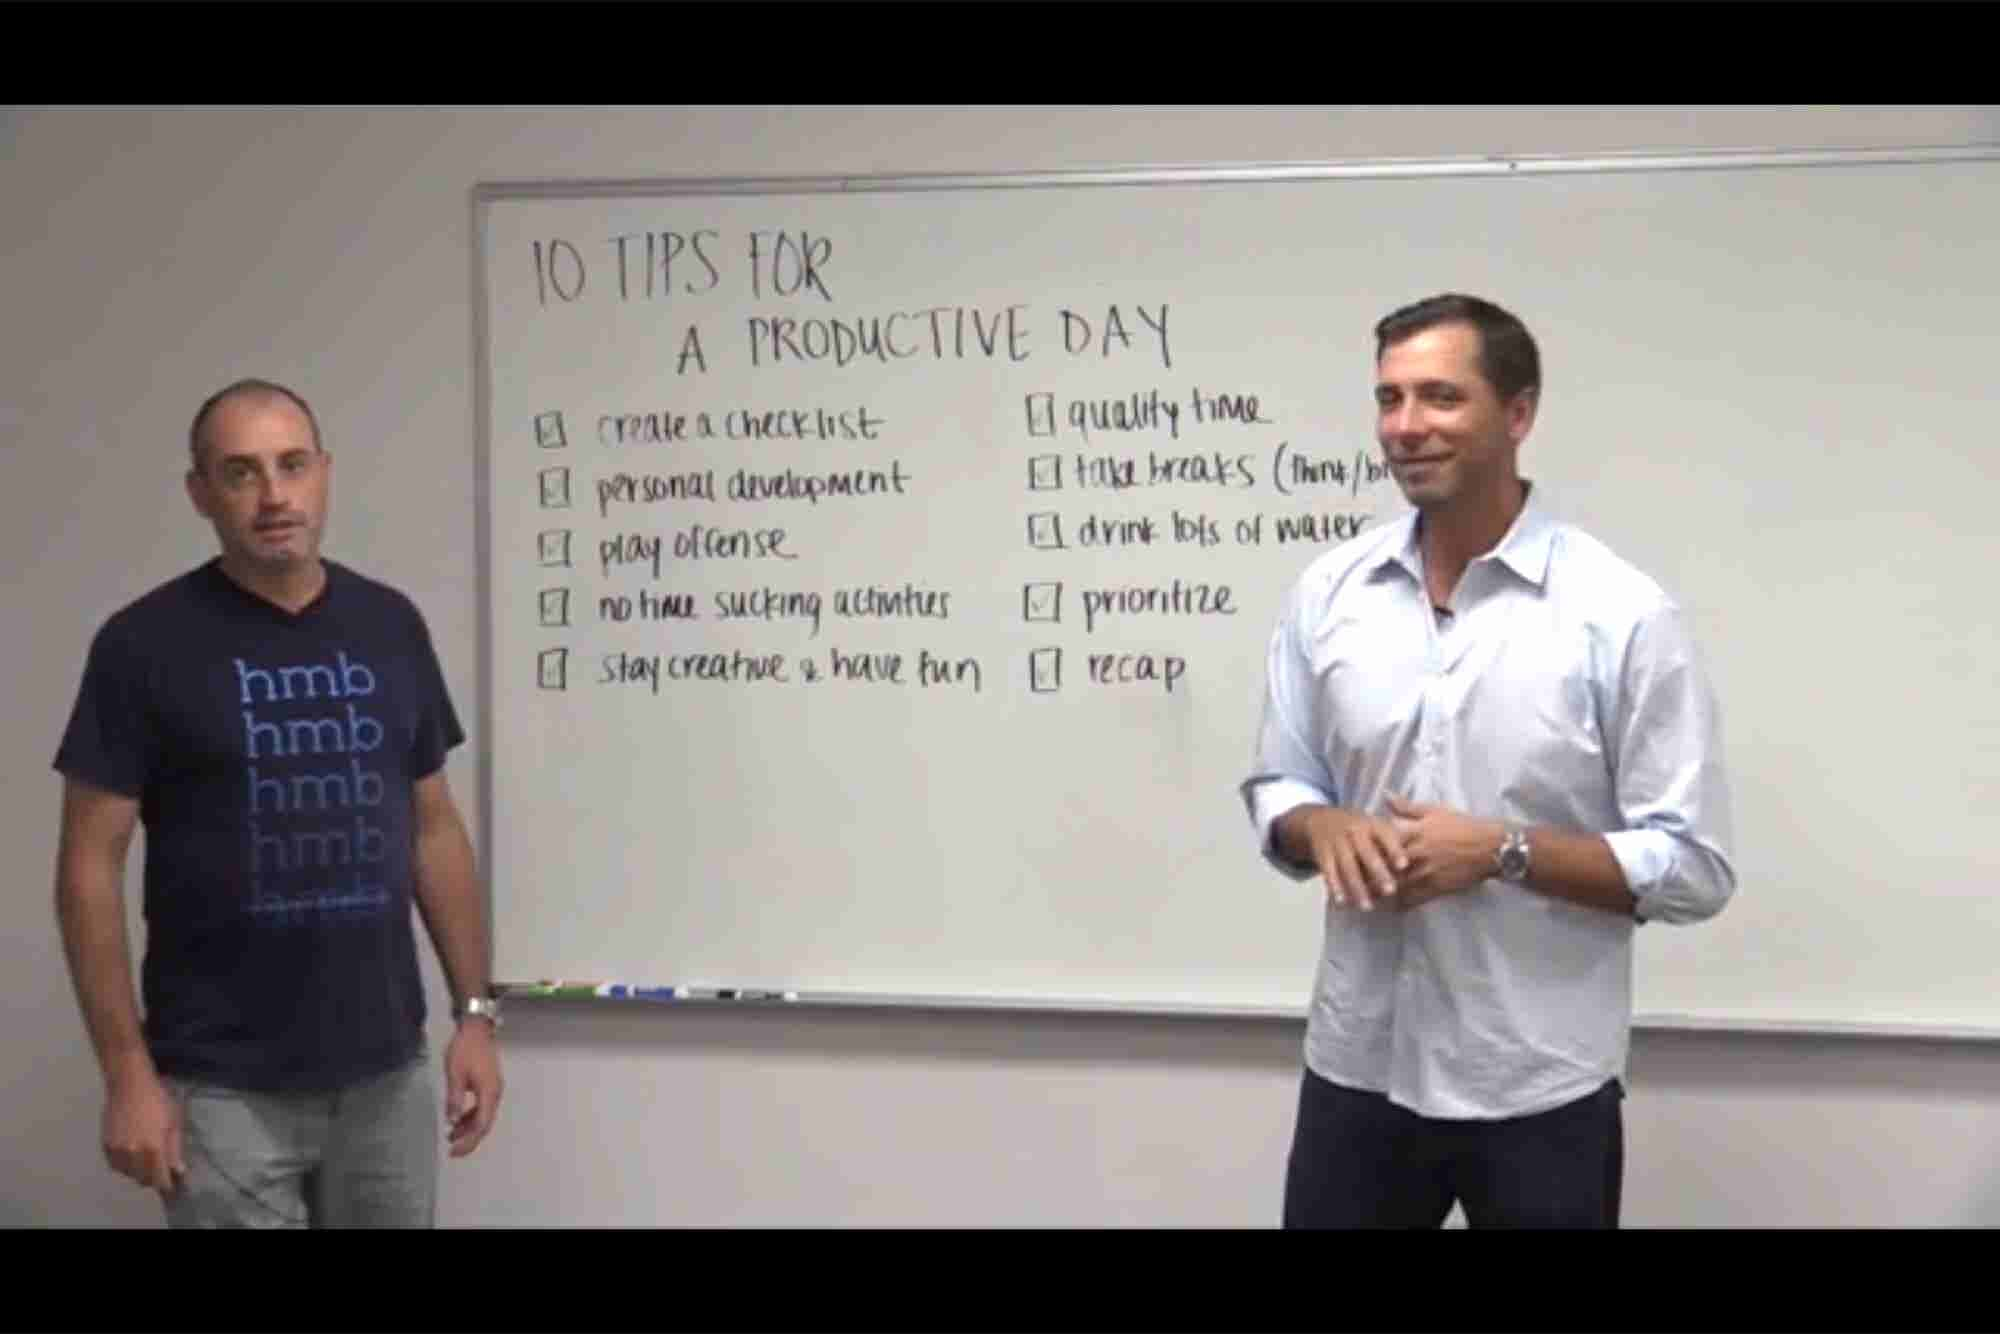 10 Tips for a Productive Day